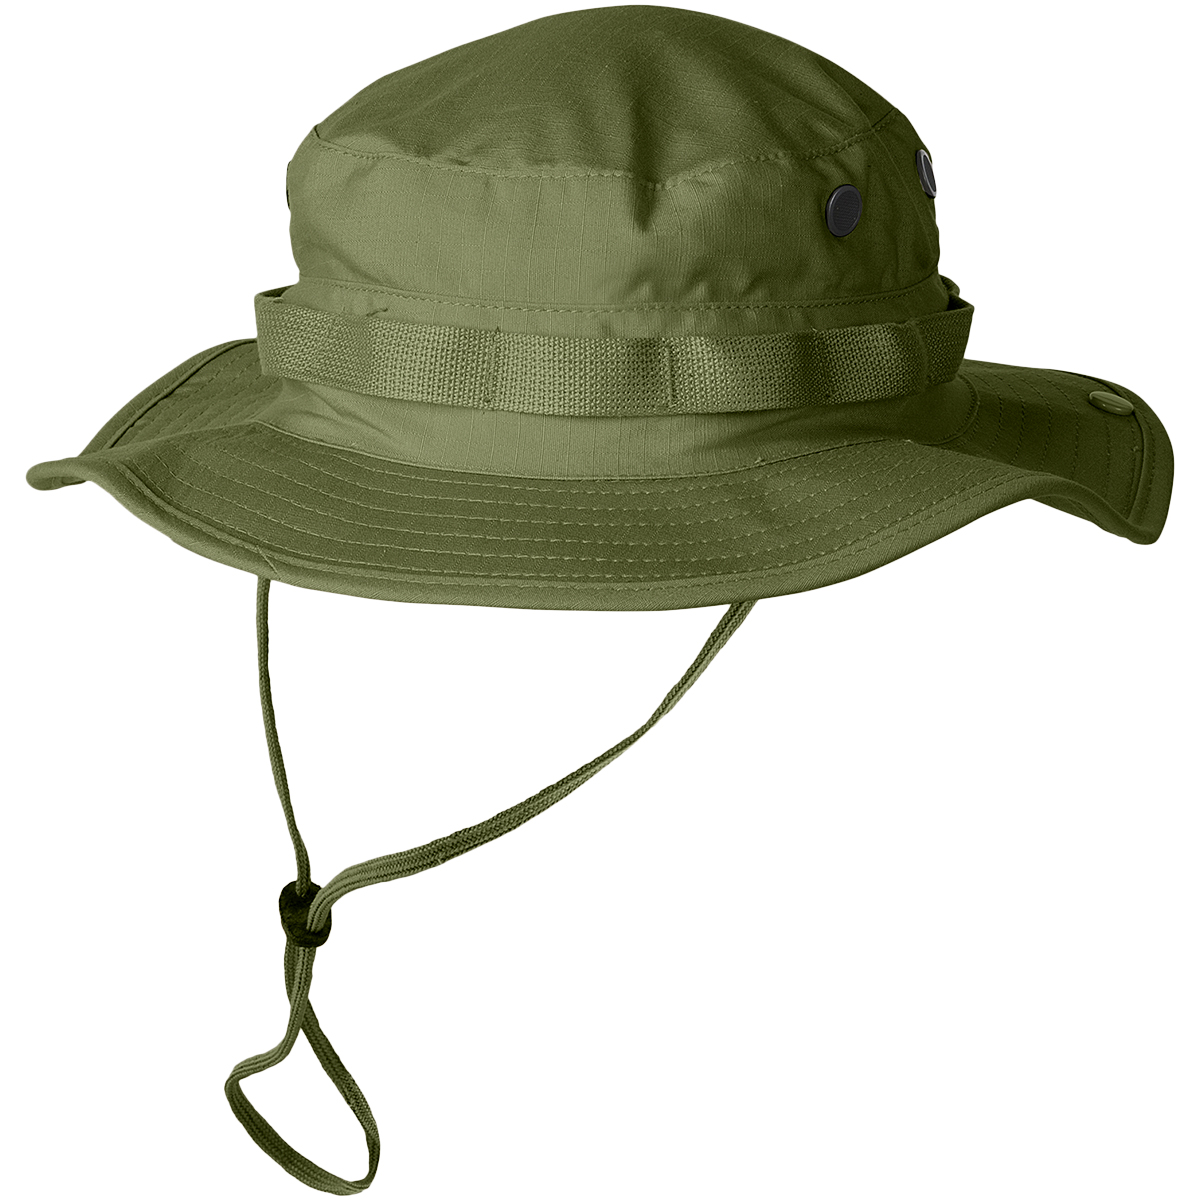 Sentinel Helikon Tactical GI Boonie Jungle Hat Army Hiking Fishing Airsoft  Olive Green 65ad2c89626